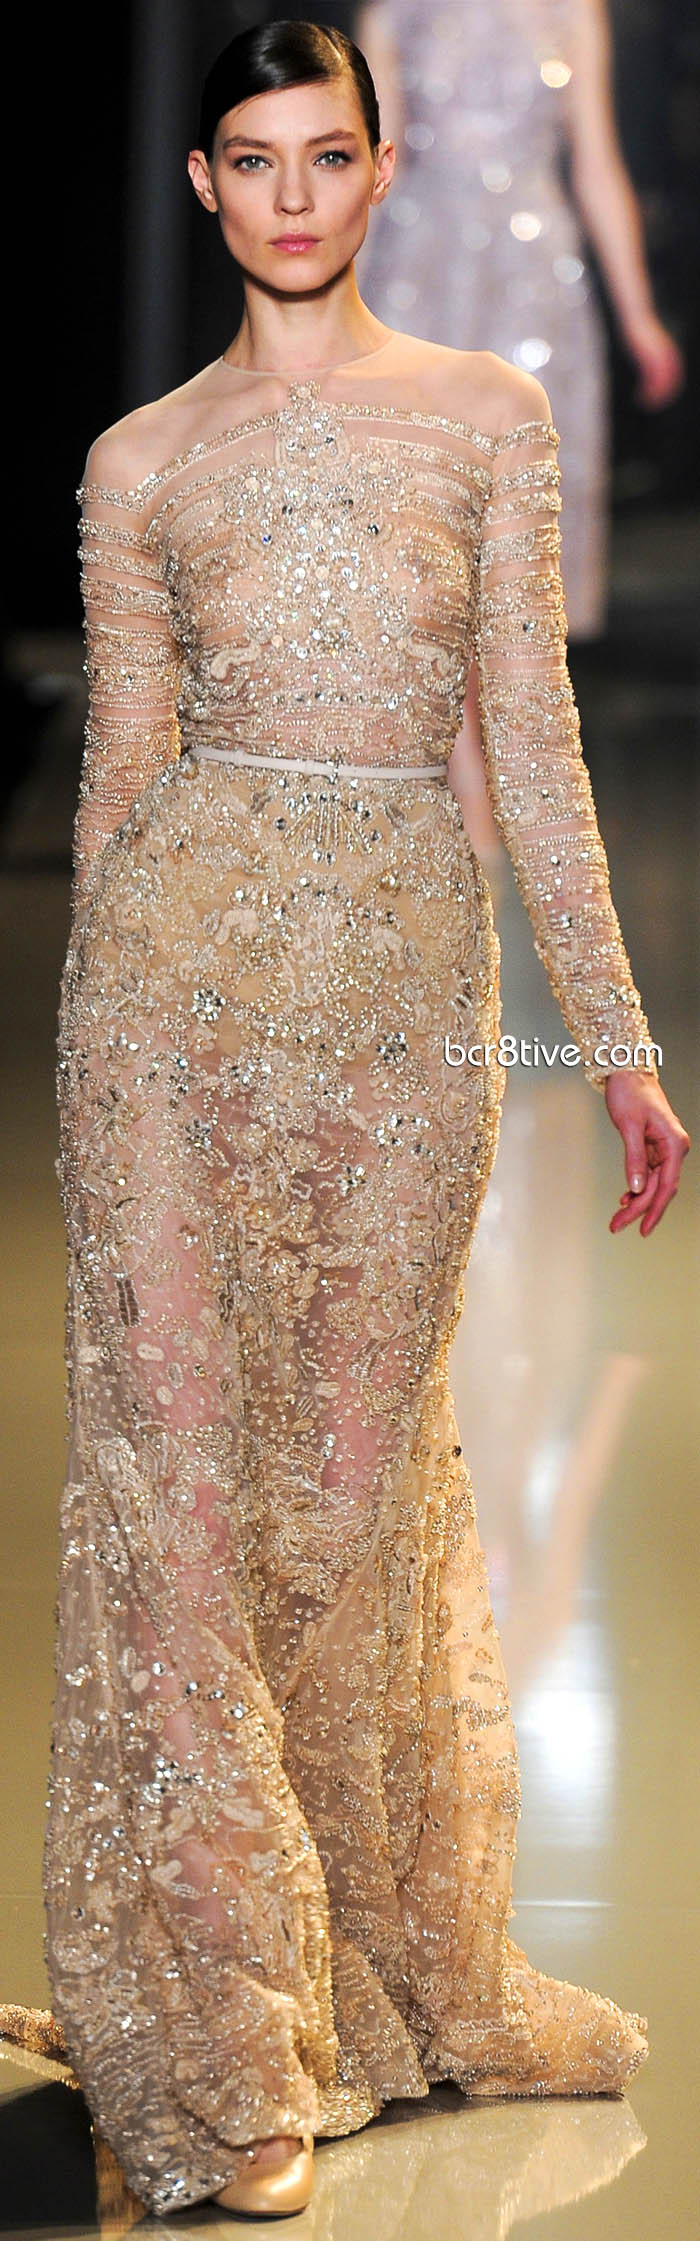 Elie Saab Spring Summer 2013 Haute Couture